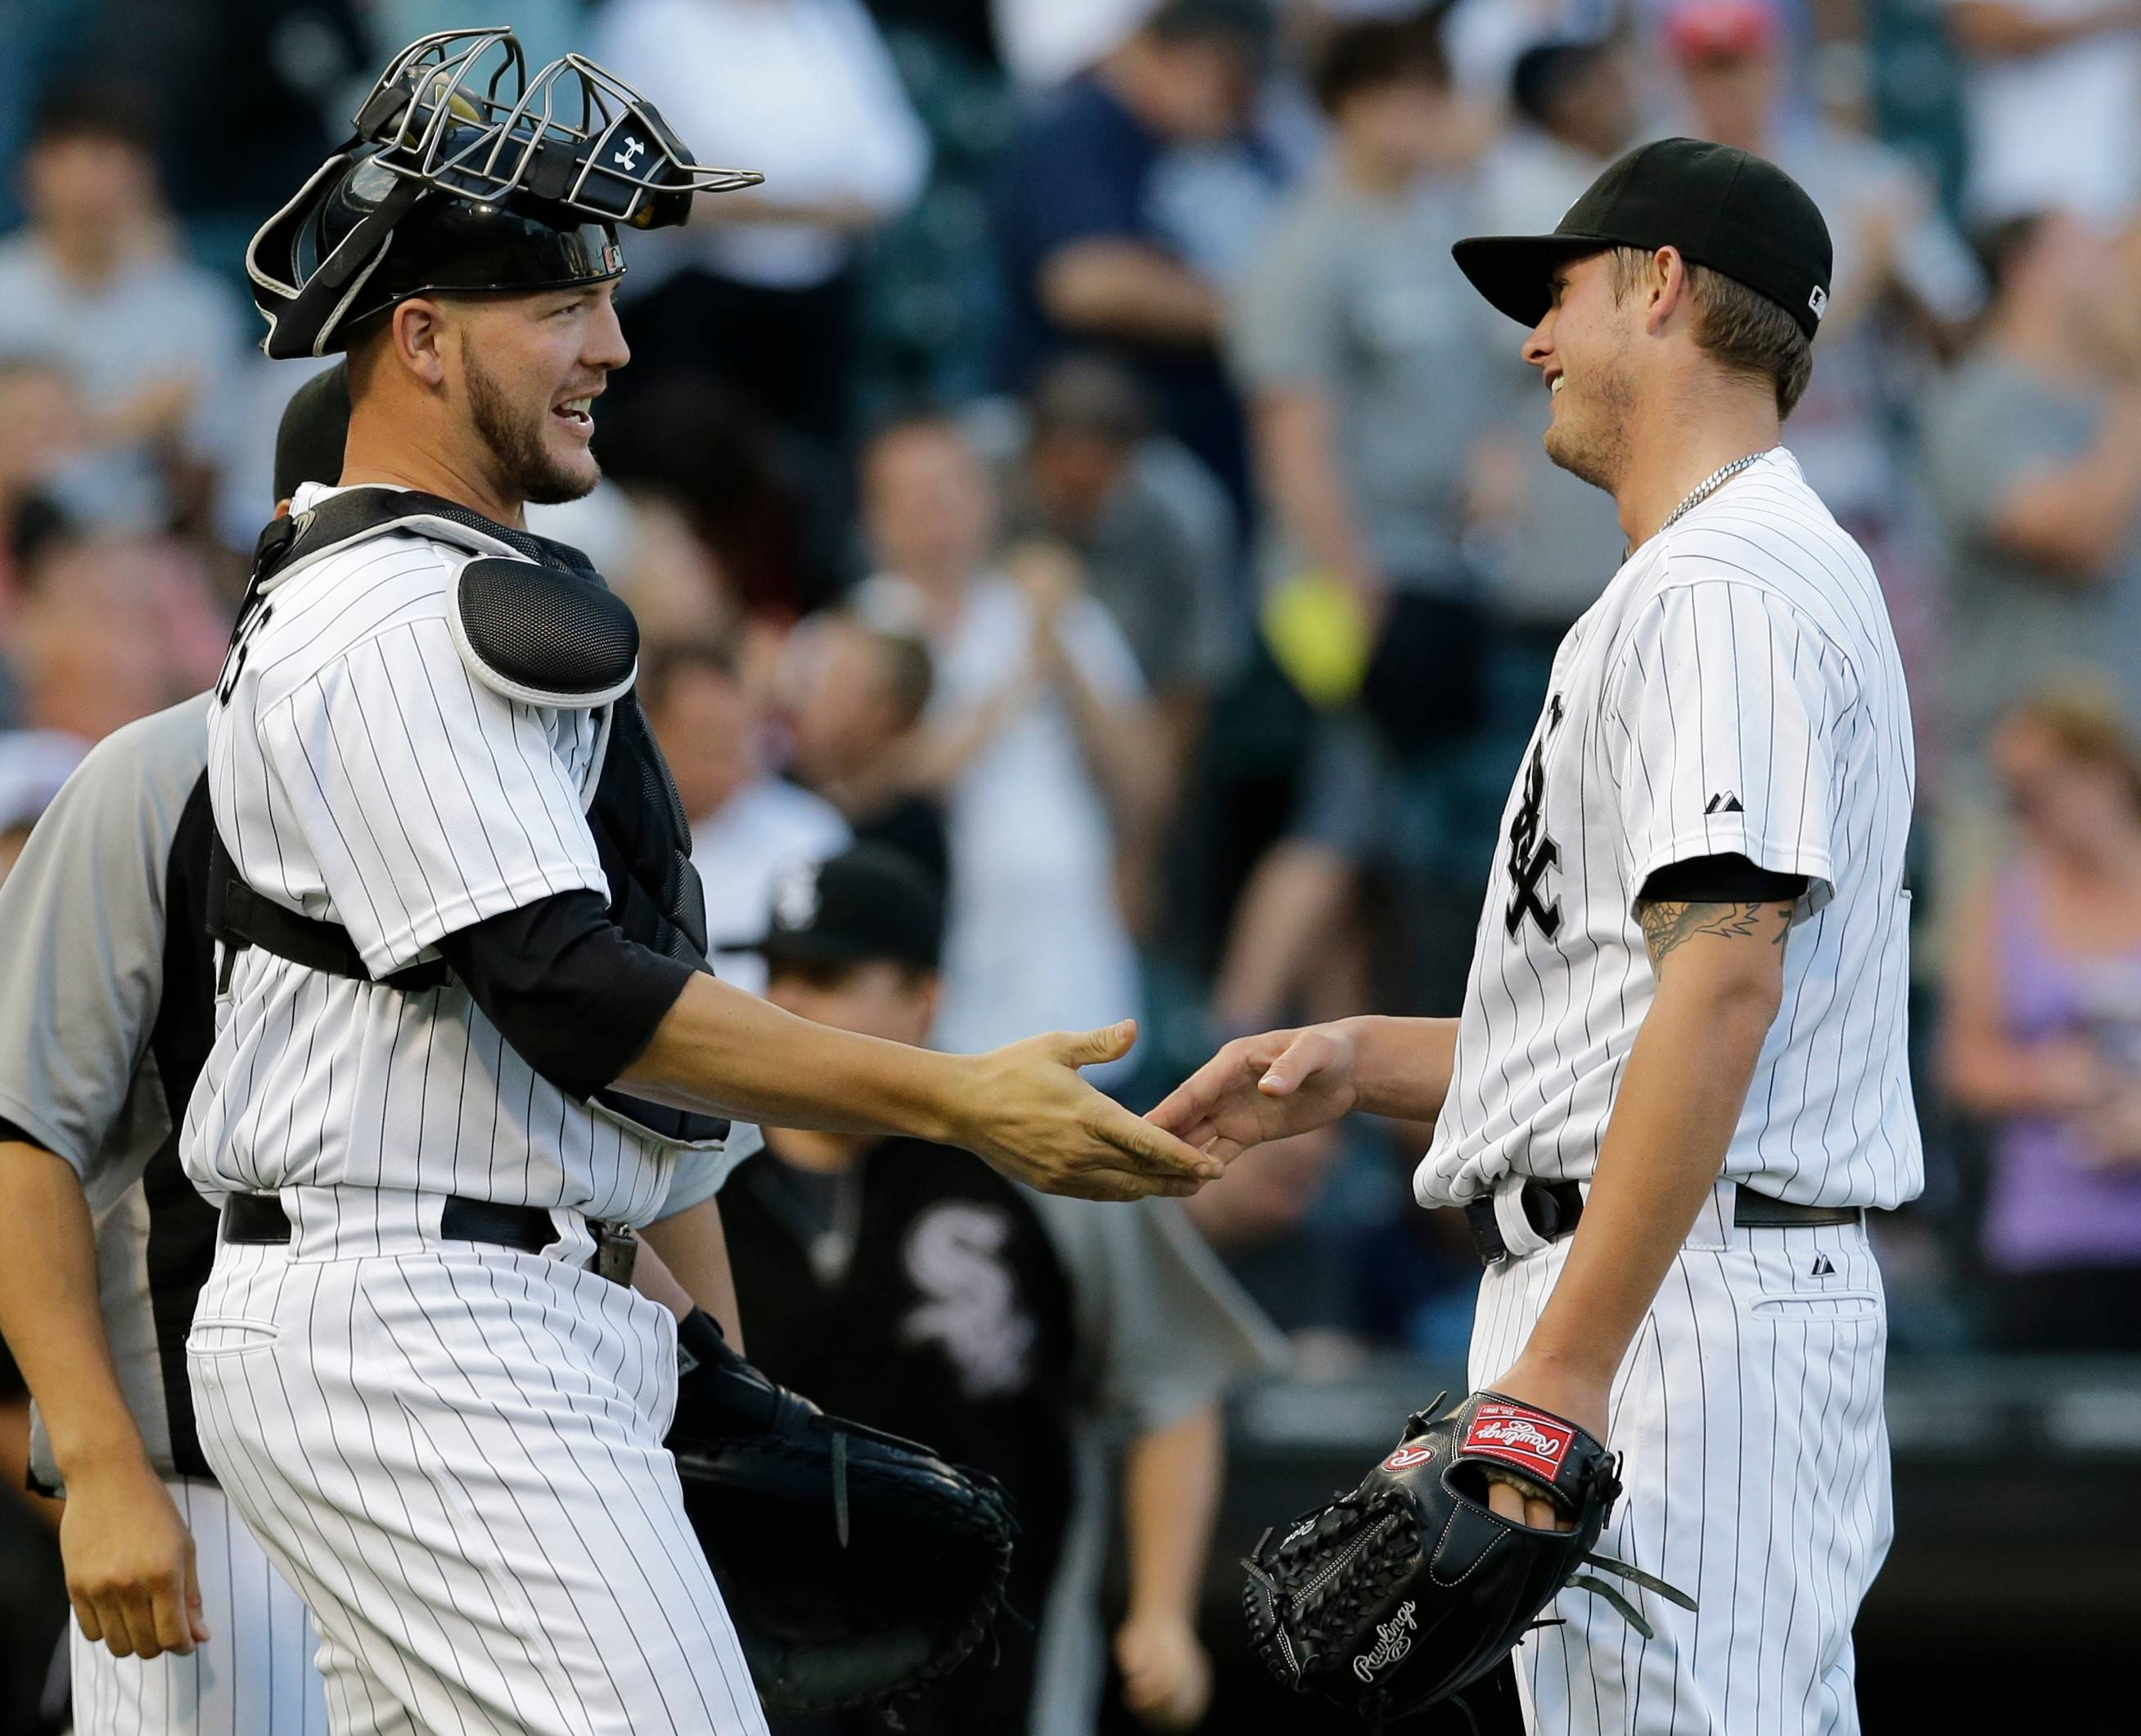 White Sox closer Addison Reed, right, celebrates with catcher Tyler Flowers after defeating the Minnesota Twins 5-4 in a baseball game in Chicago, Saturday, Aug. 10, 2013.